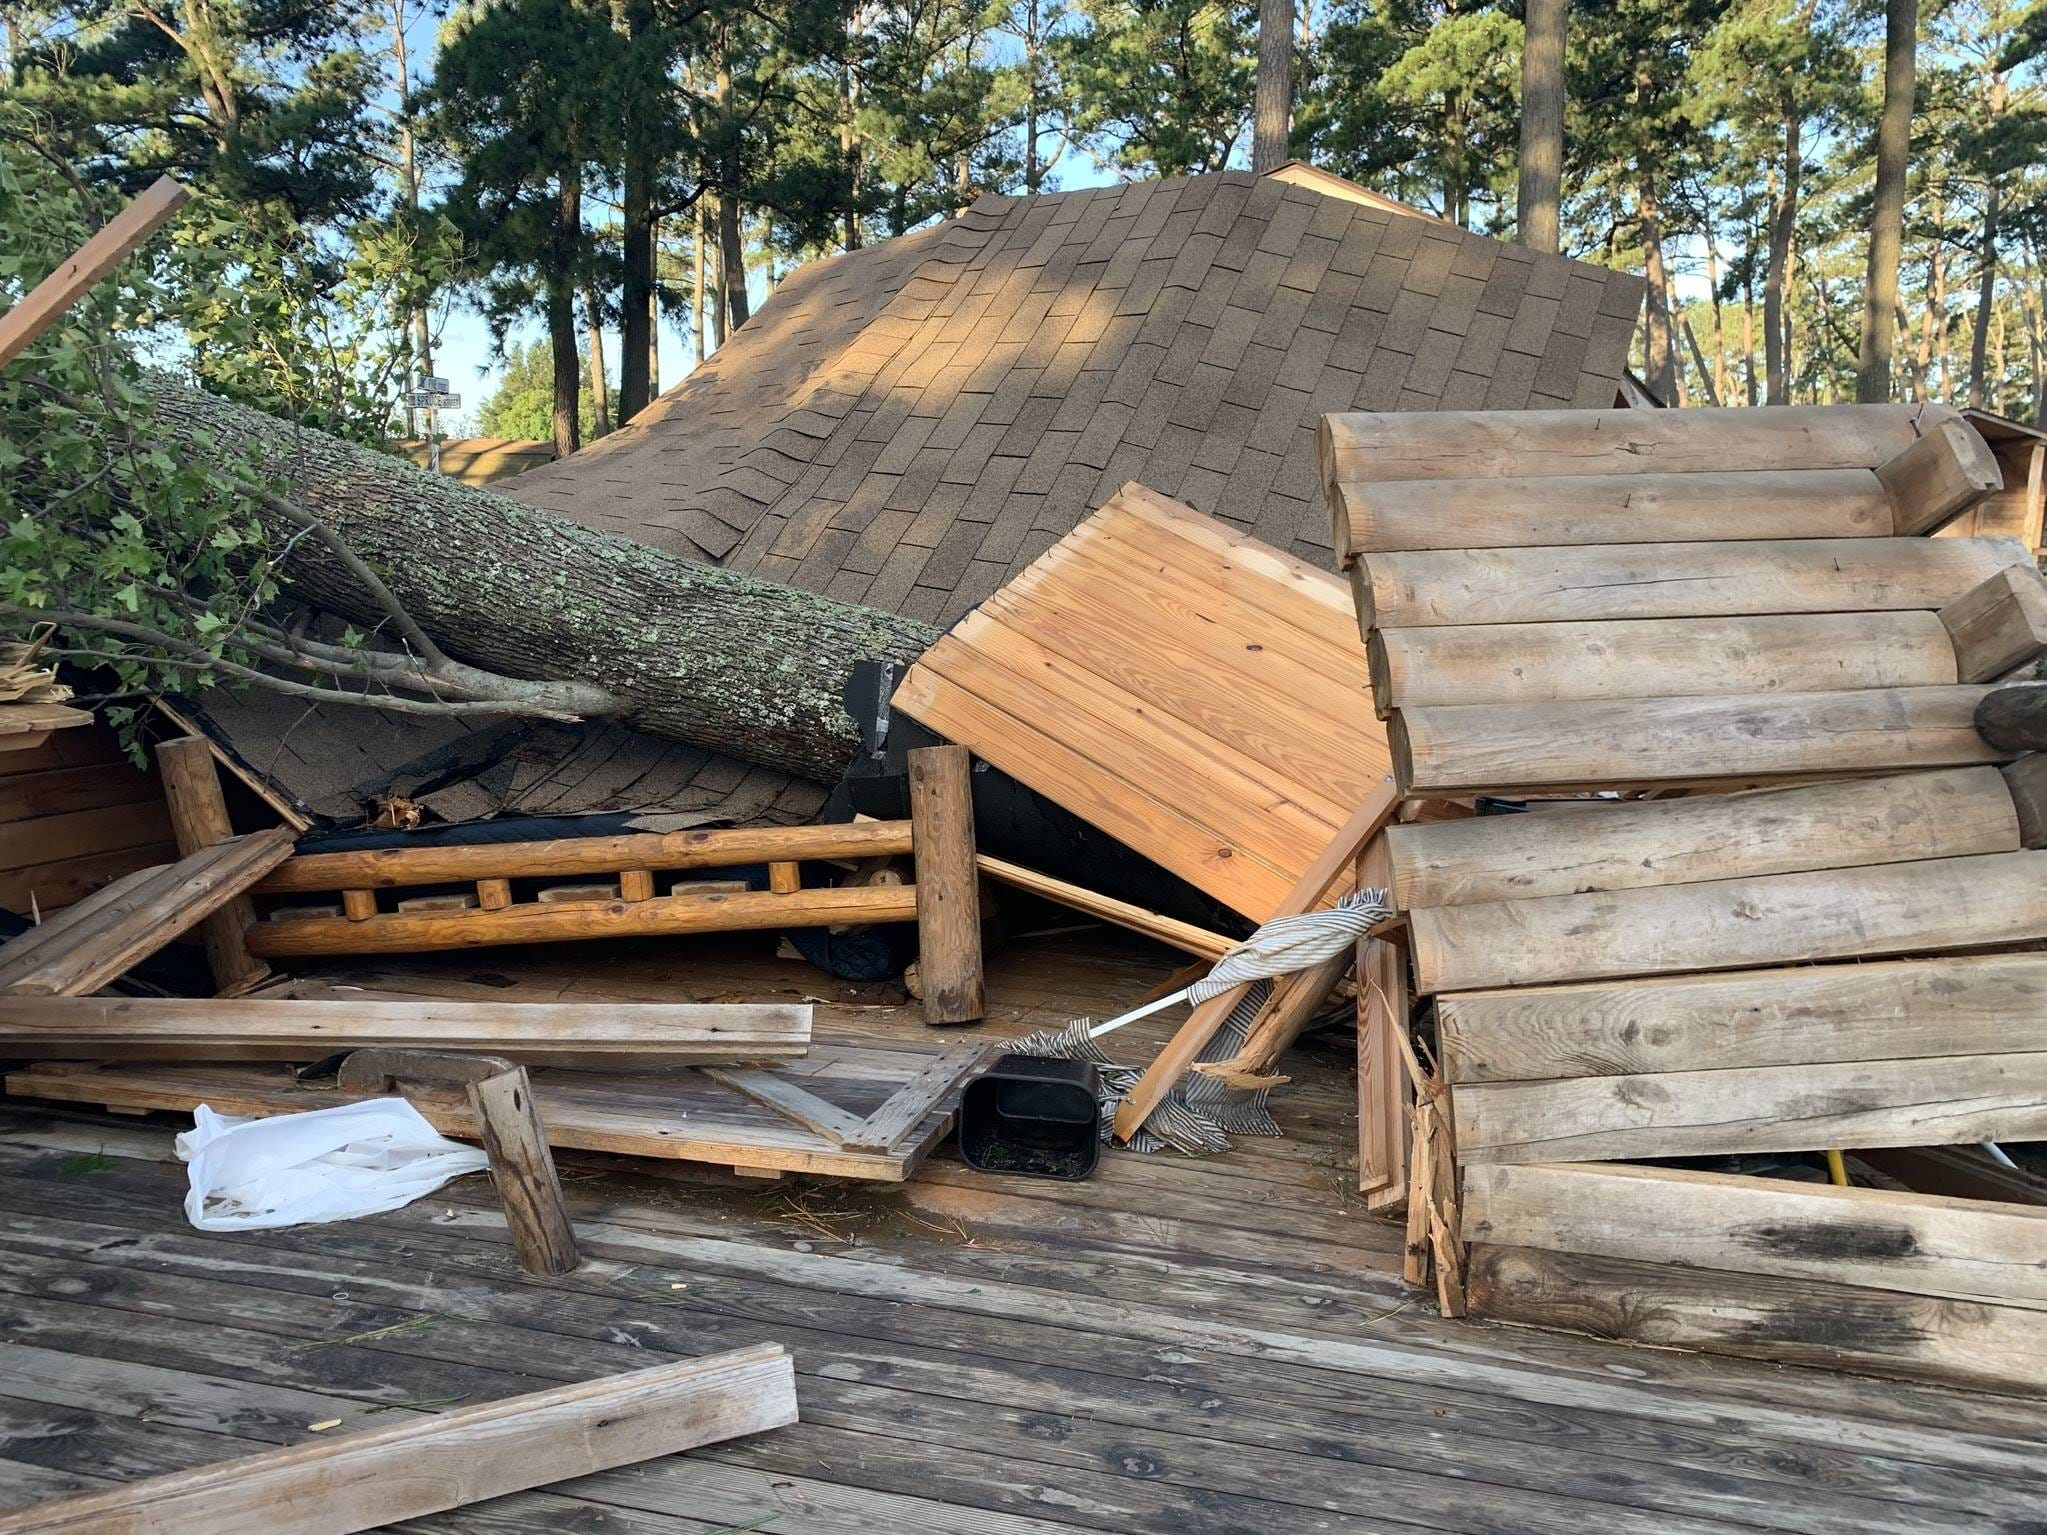 A fallen tree caused extensive damage to a structure at  Cherrystone Family Camping Resort in Cape Charles.